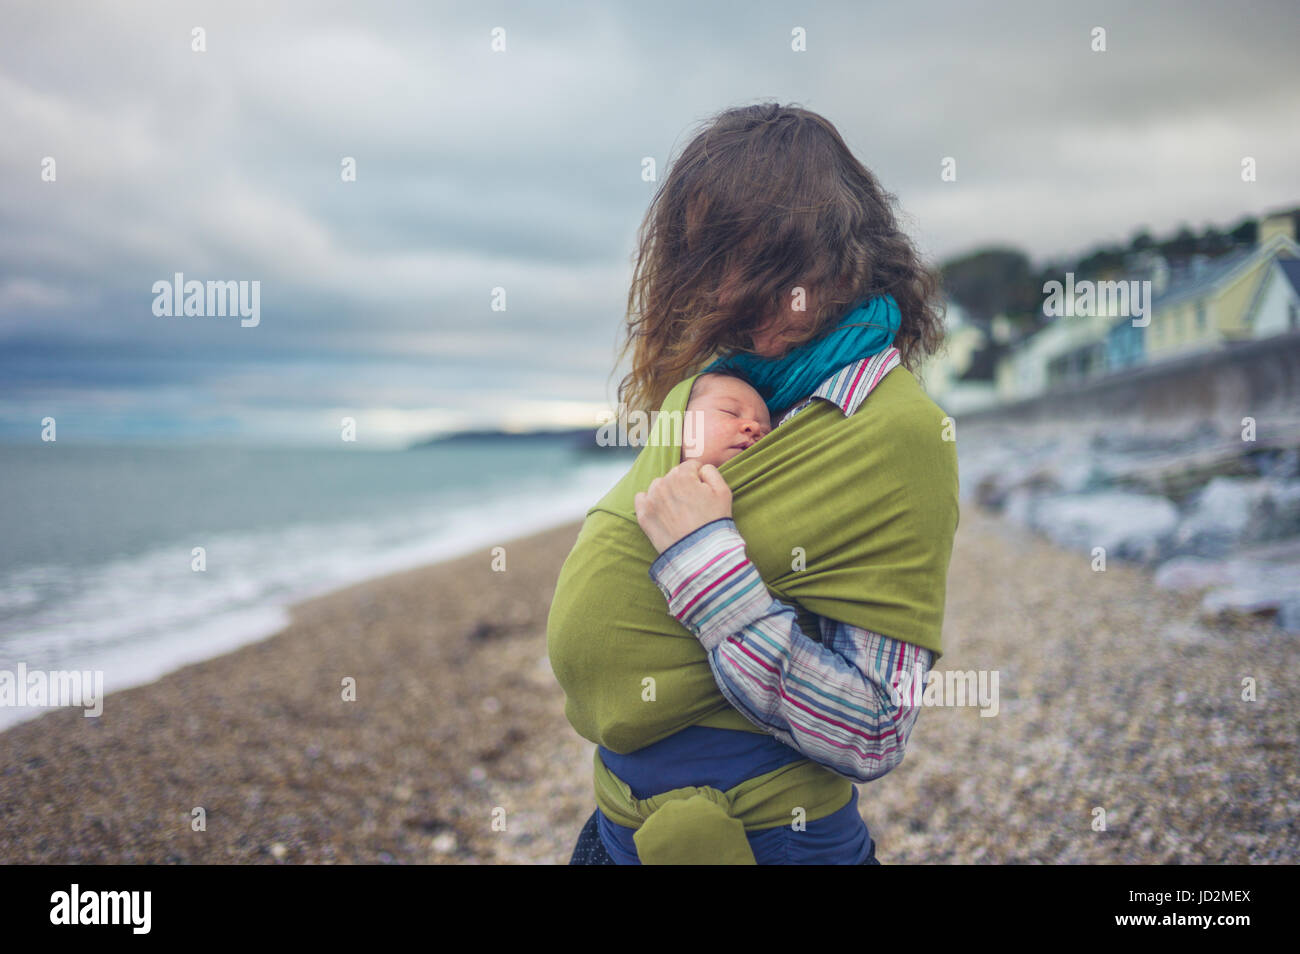 A young mother is by the sea with her baby wrappedd in a sling - Stock Image